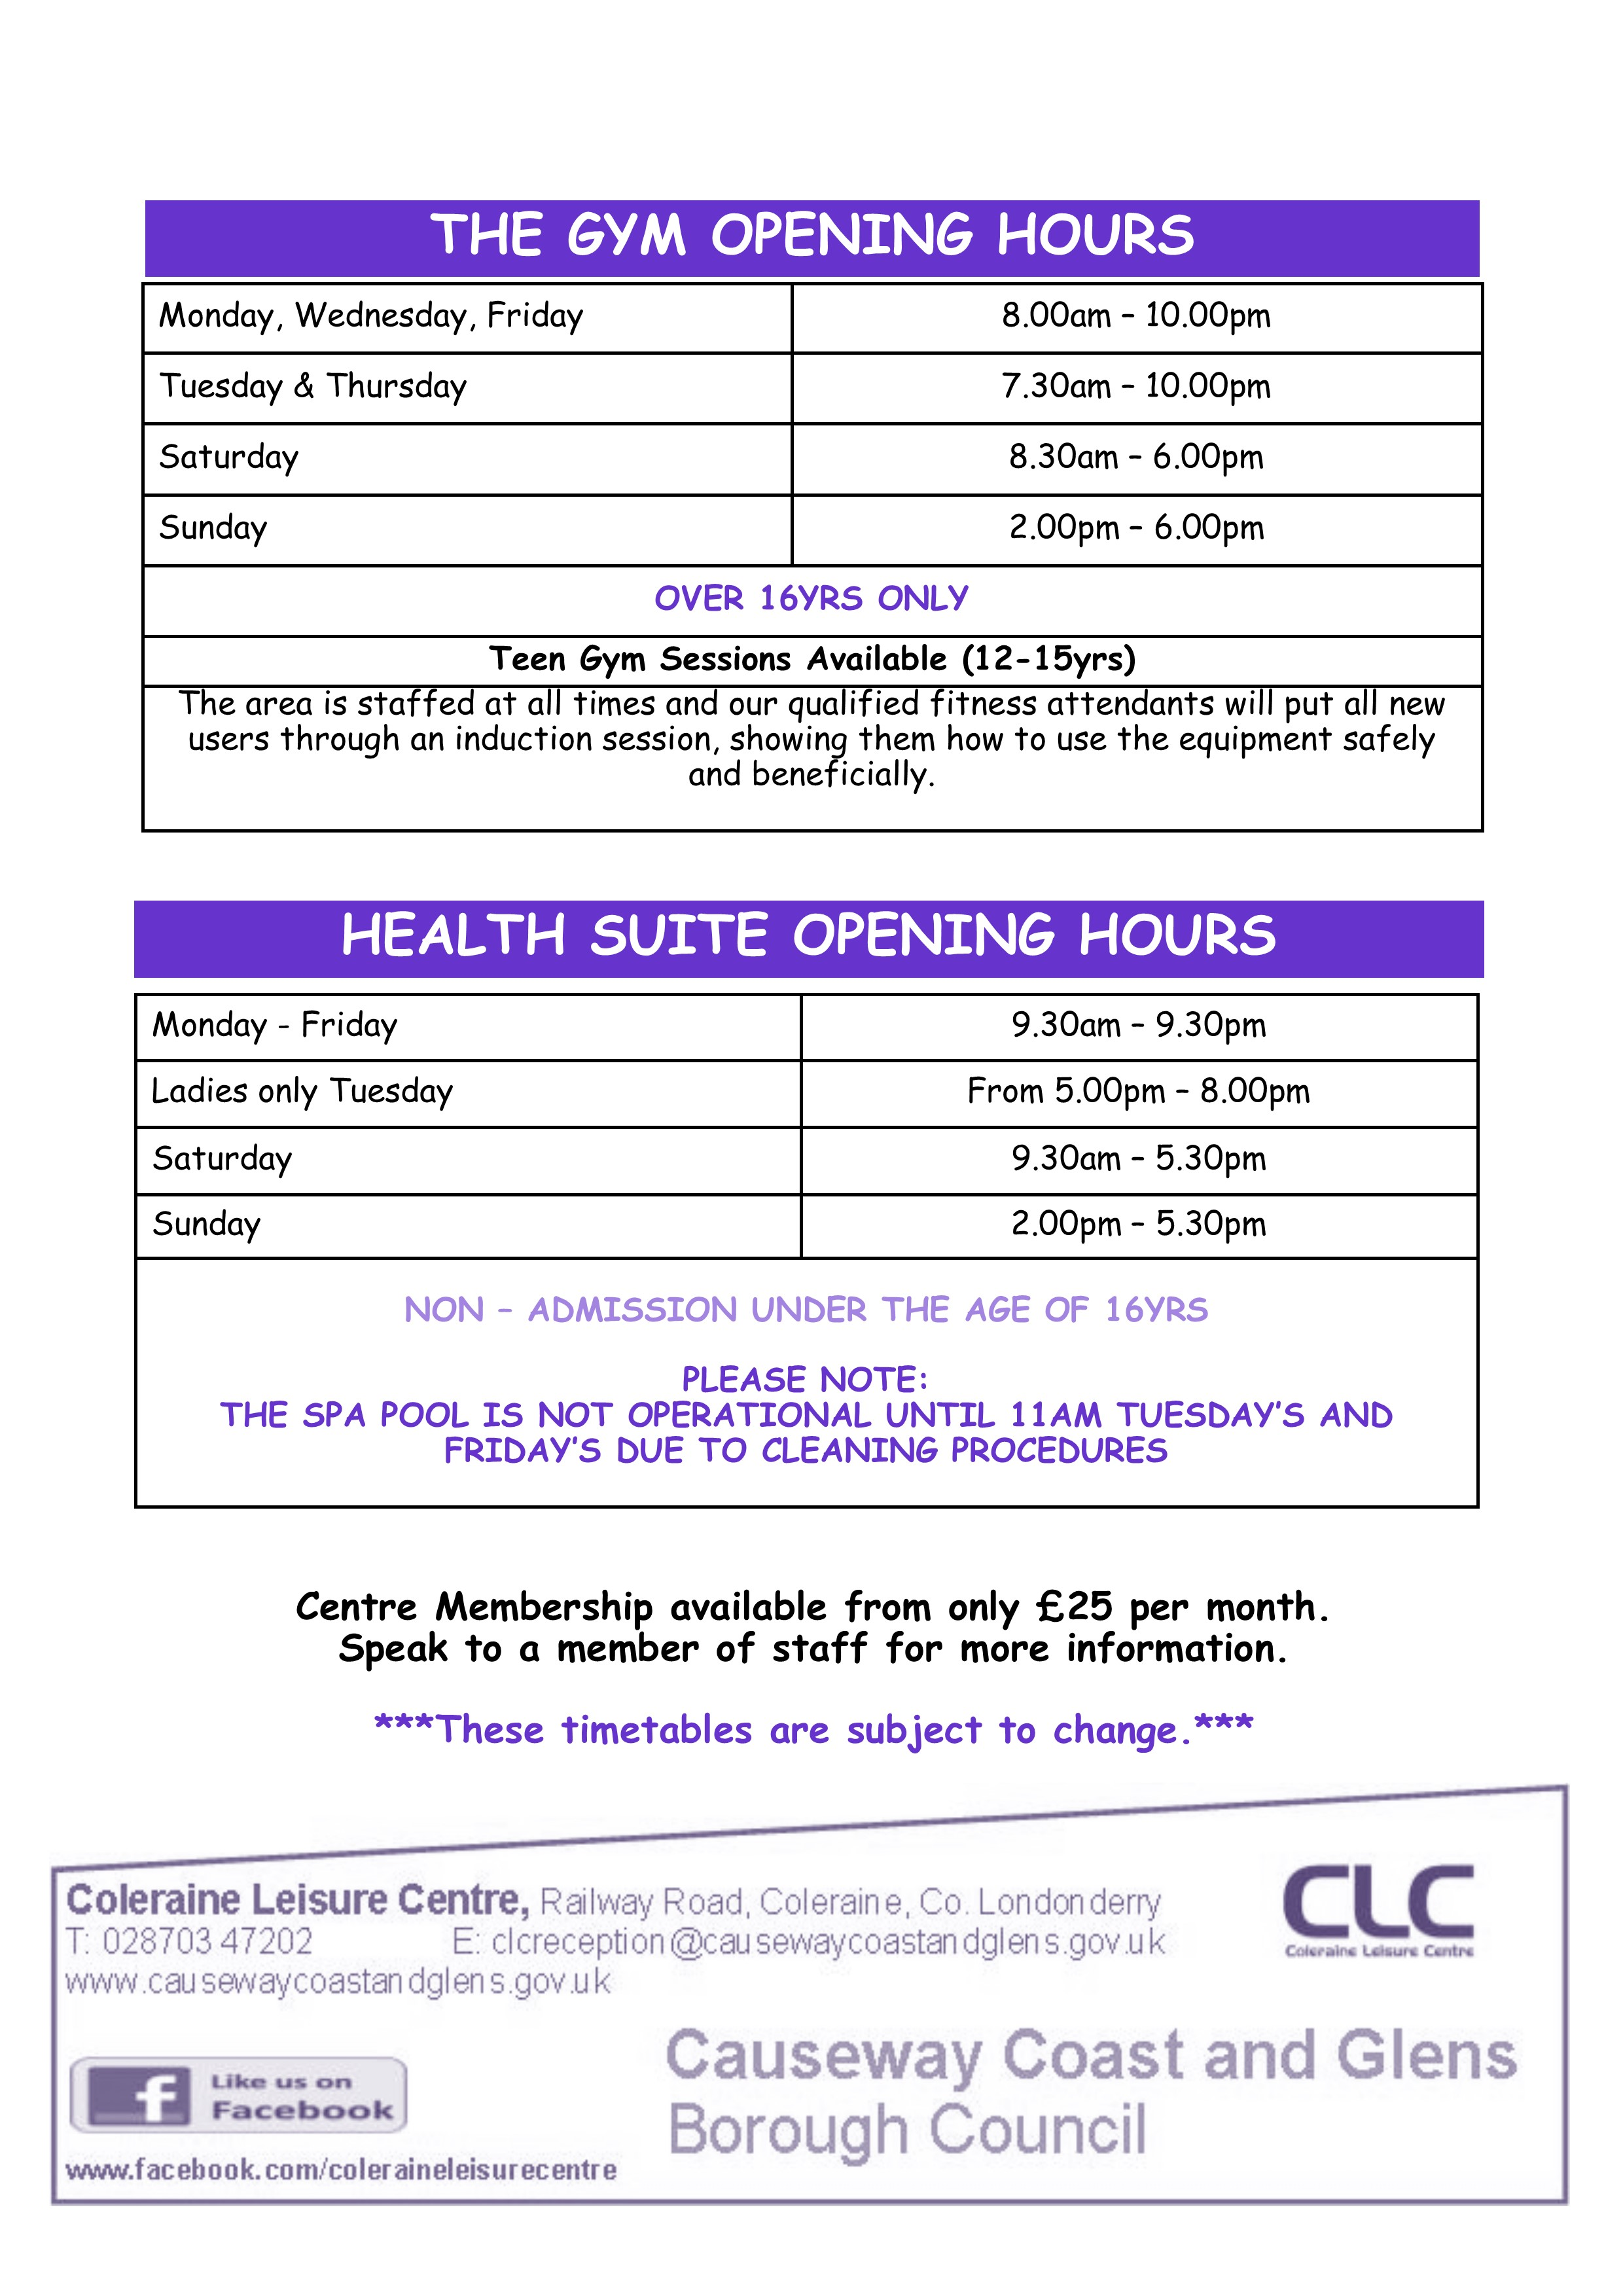 Gym & Health Suite Timetable